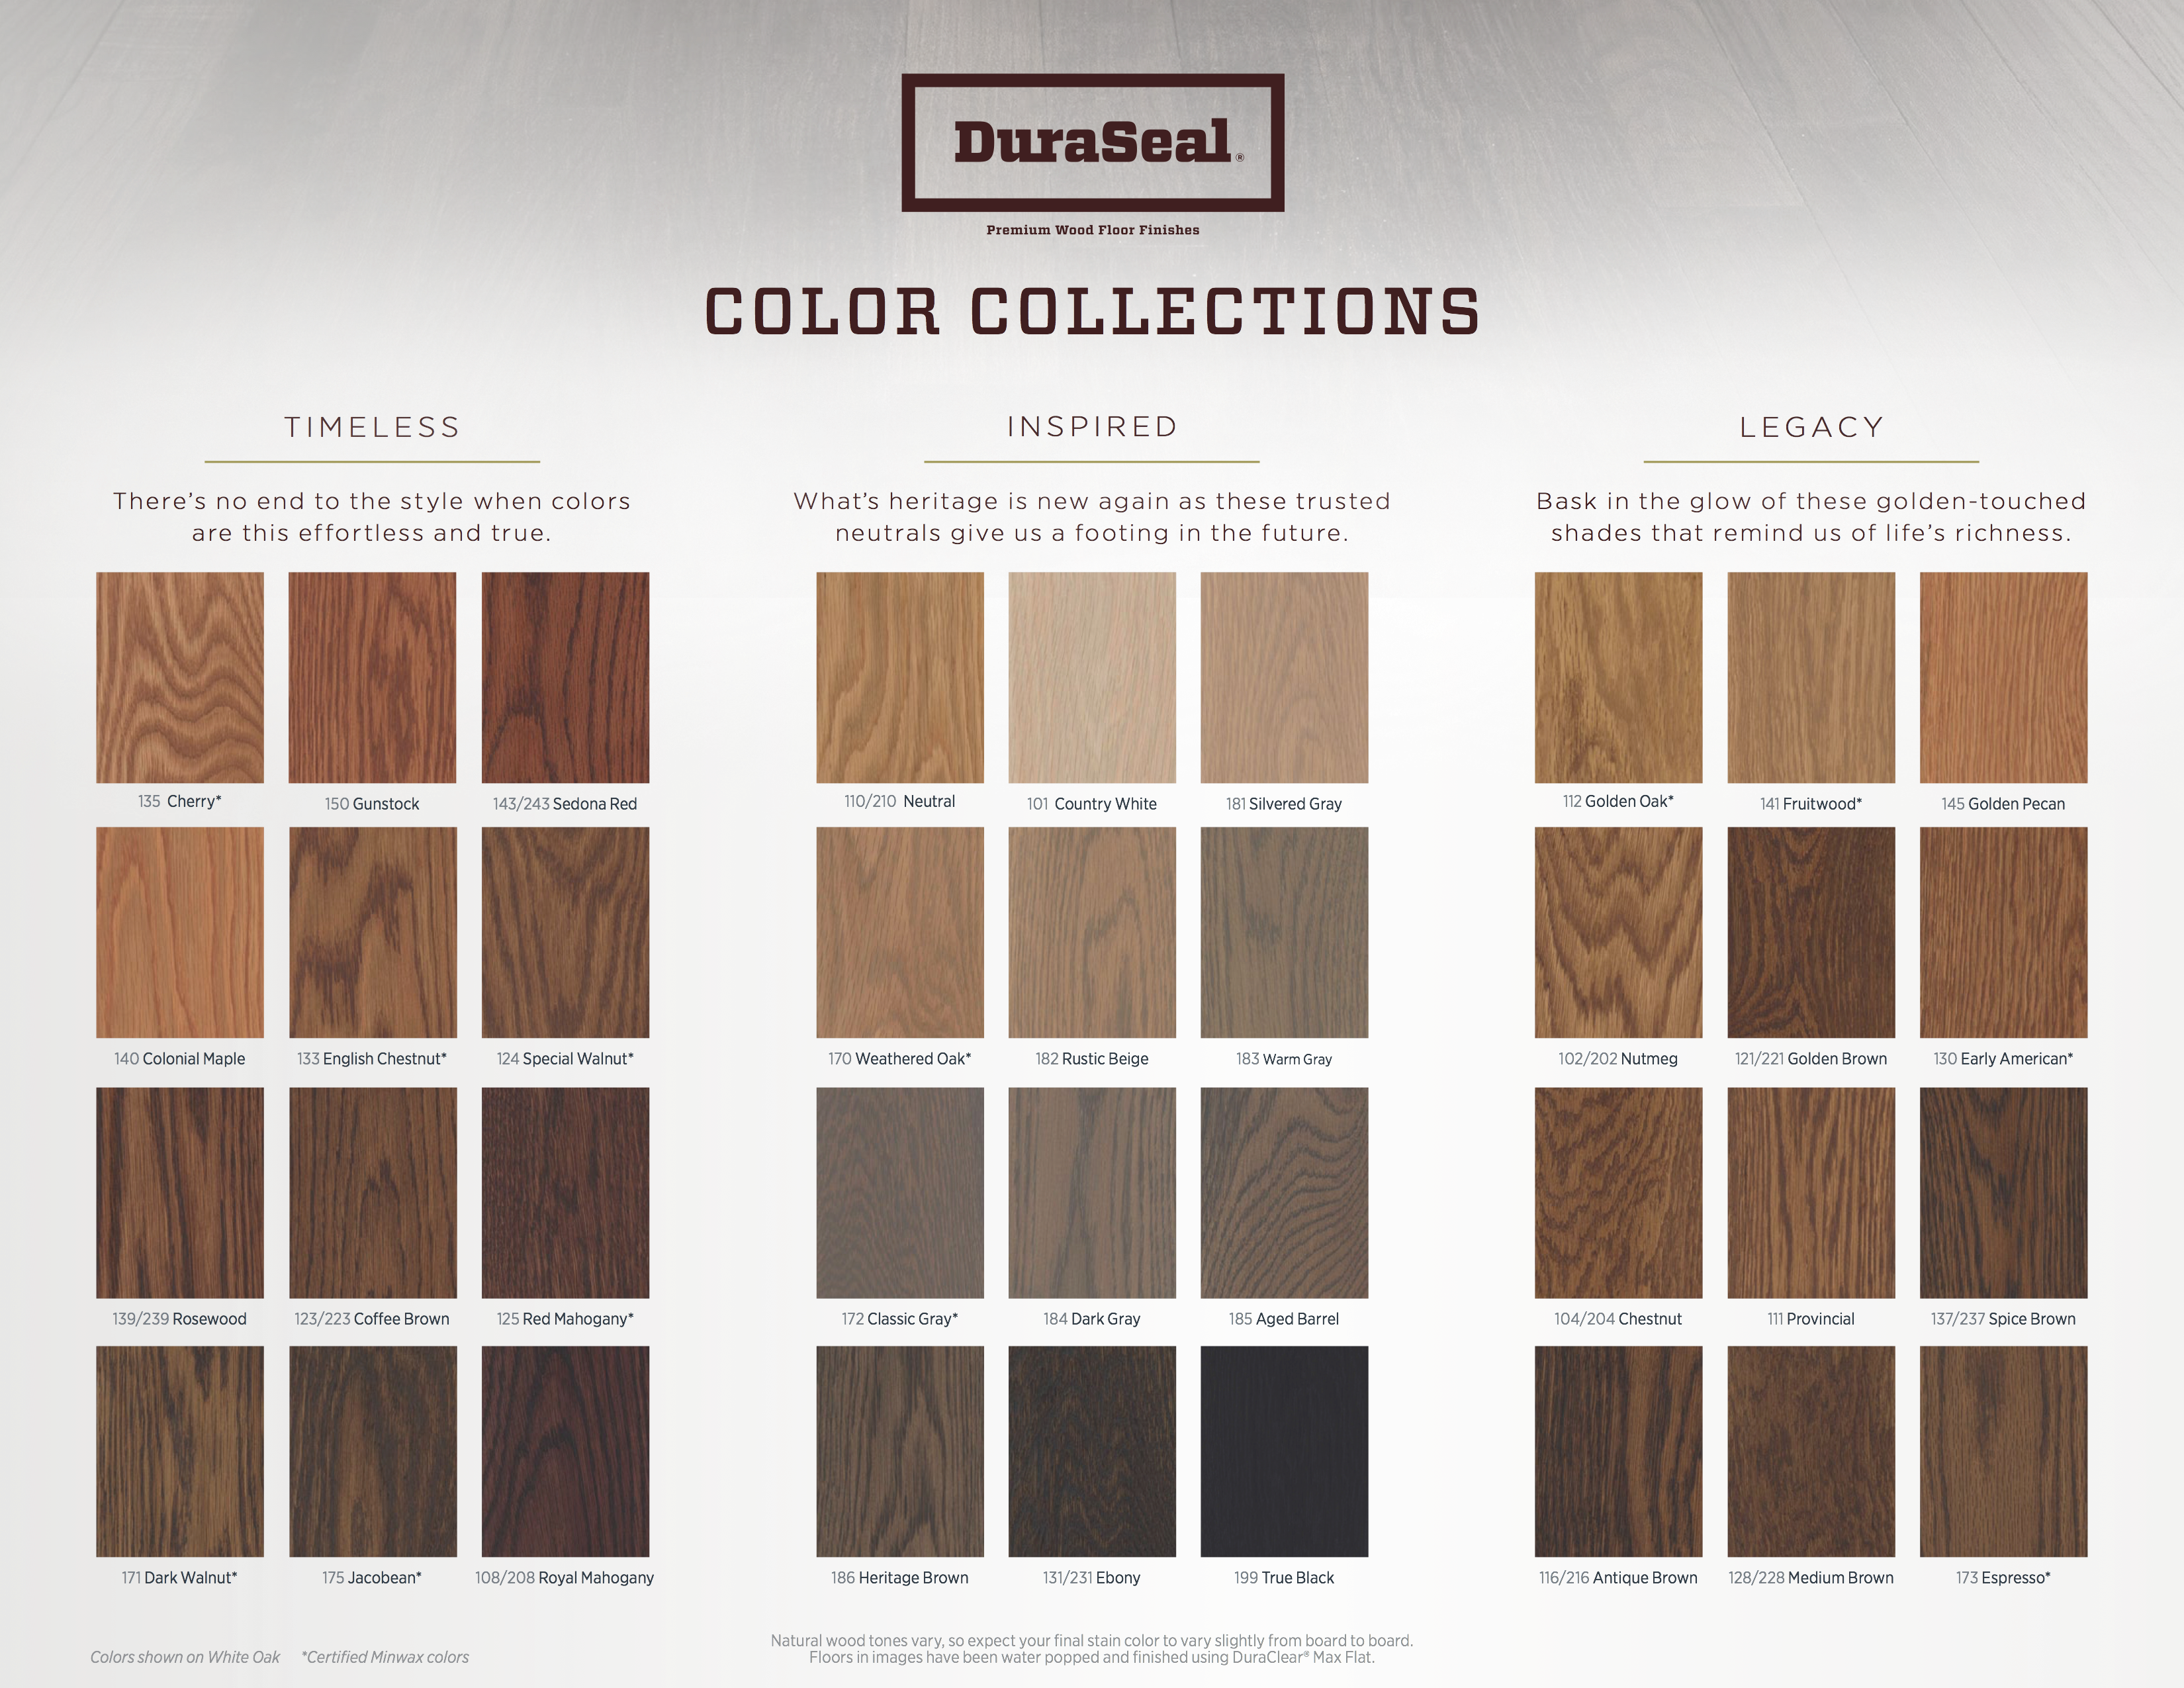 Duraseal new stain colors chart